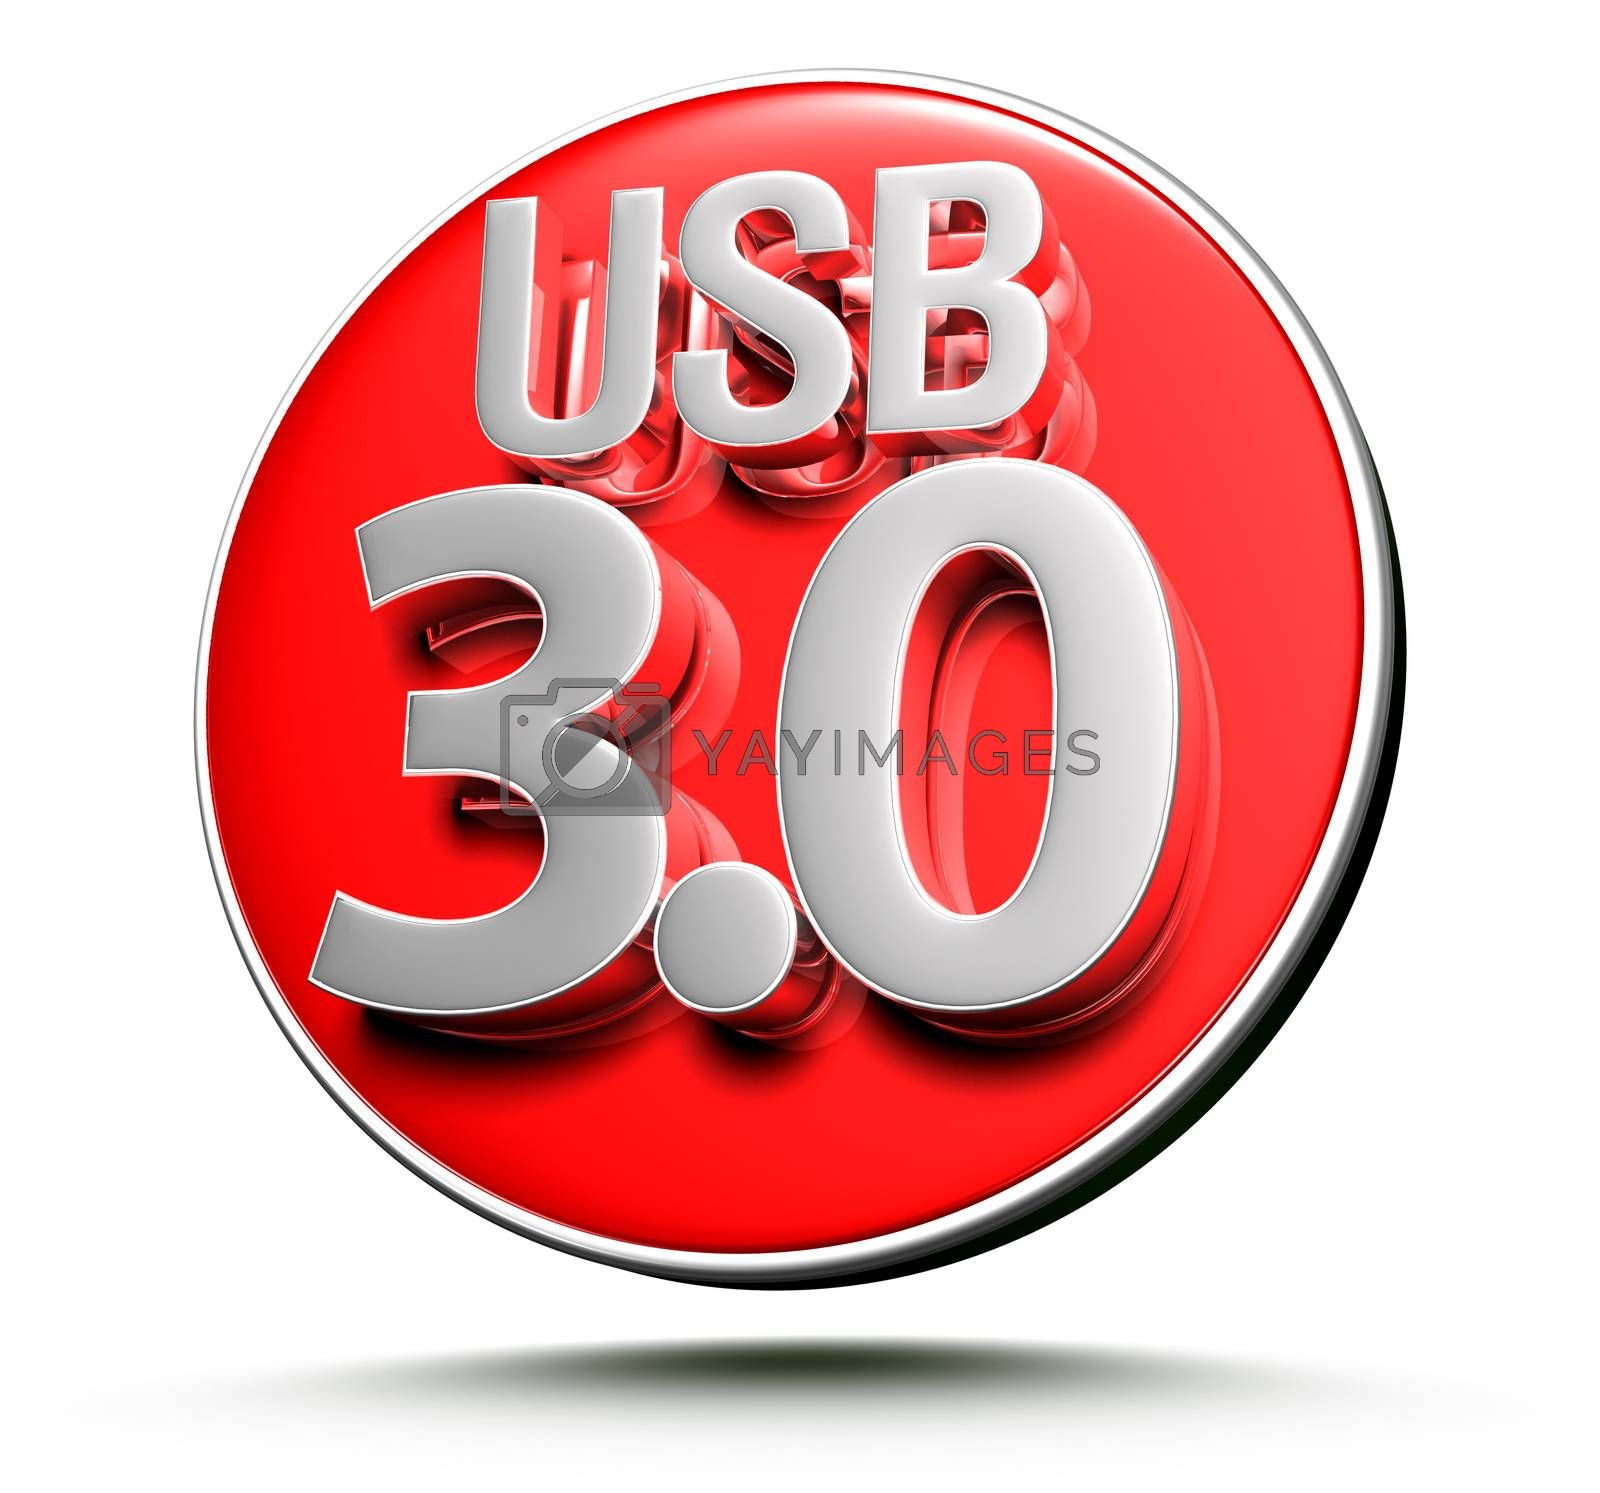 Signs Usb 3.0 3d. by thitimontoyai